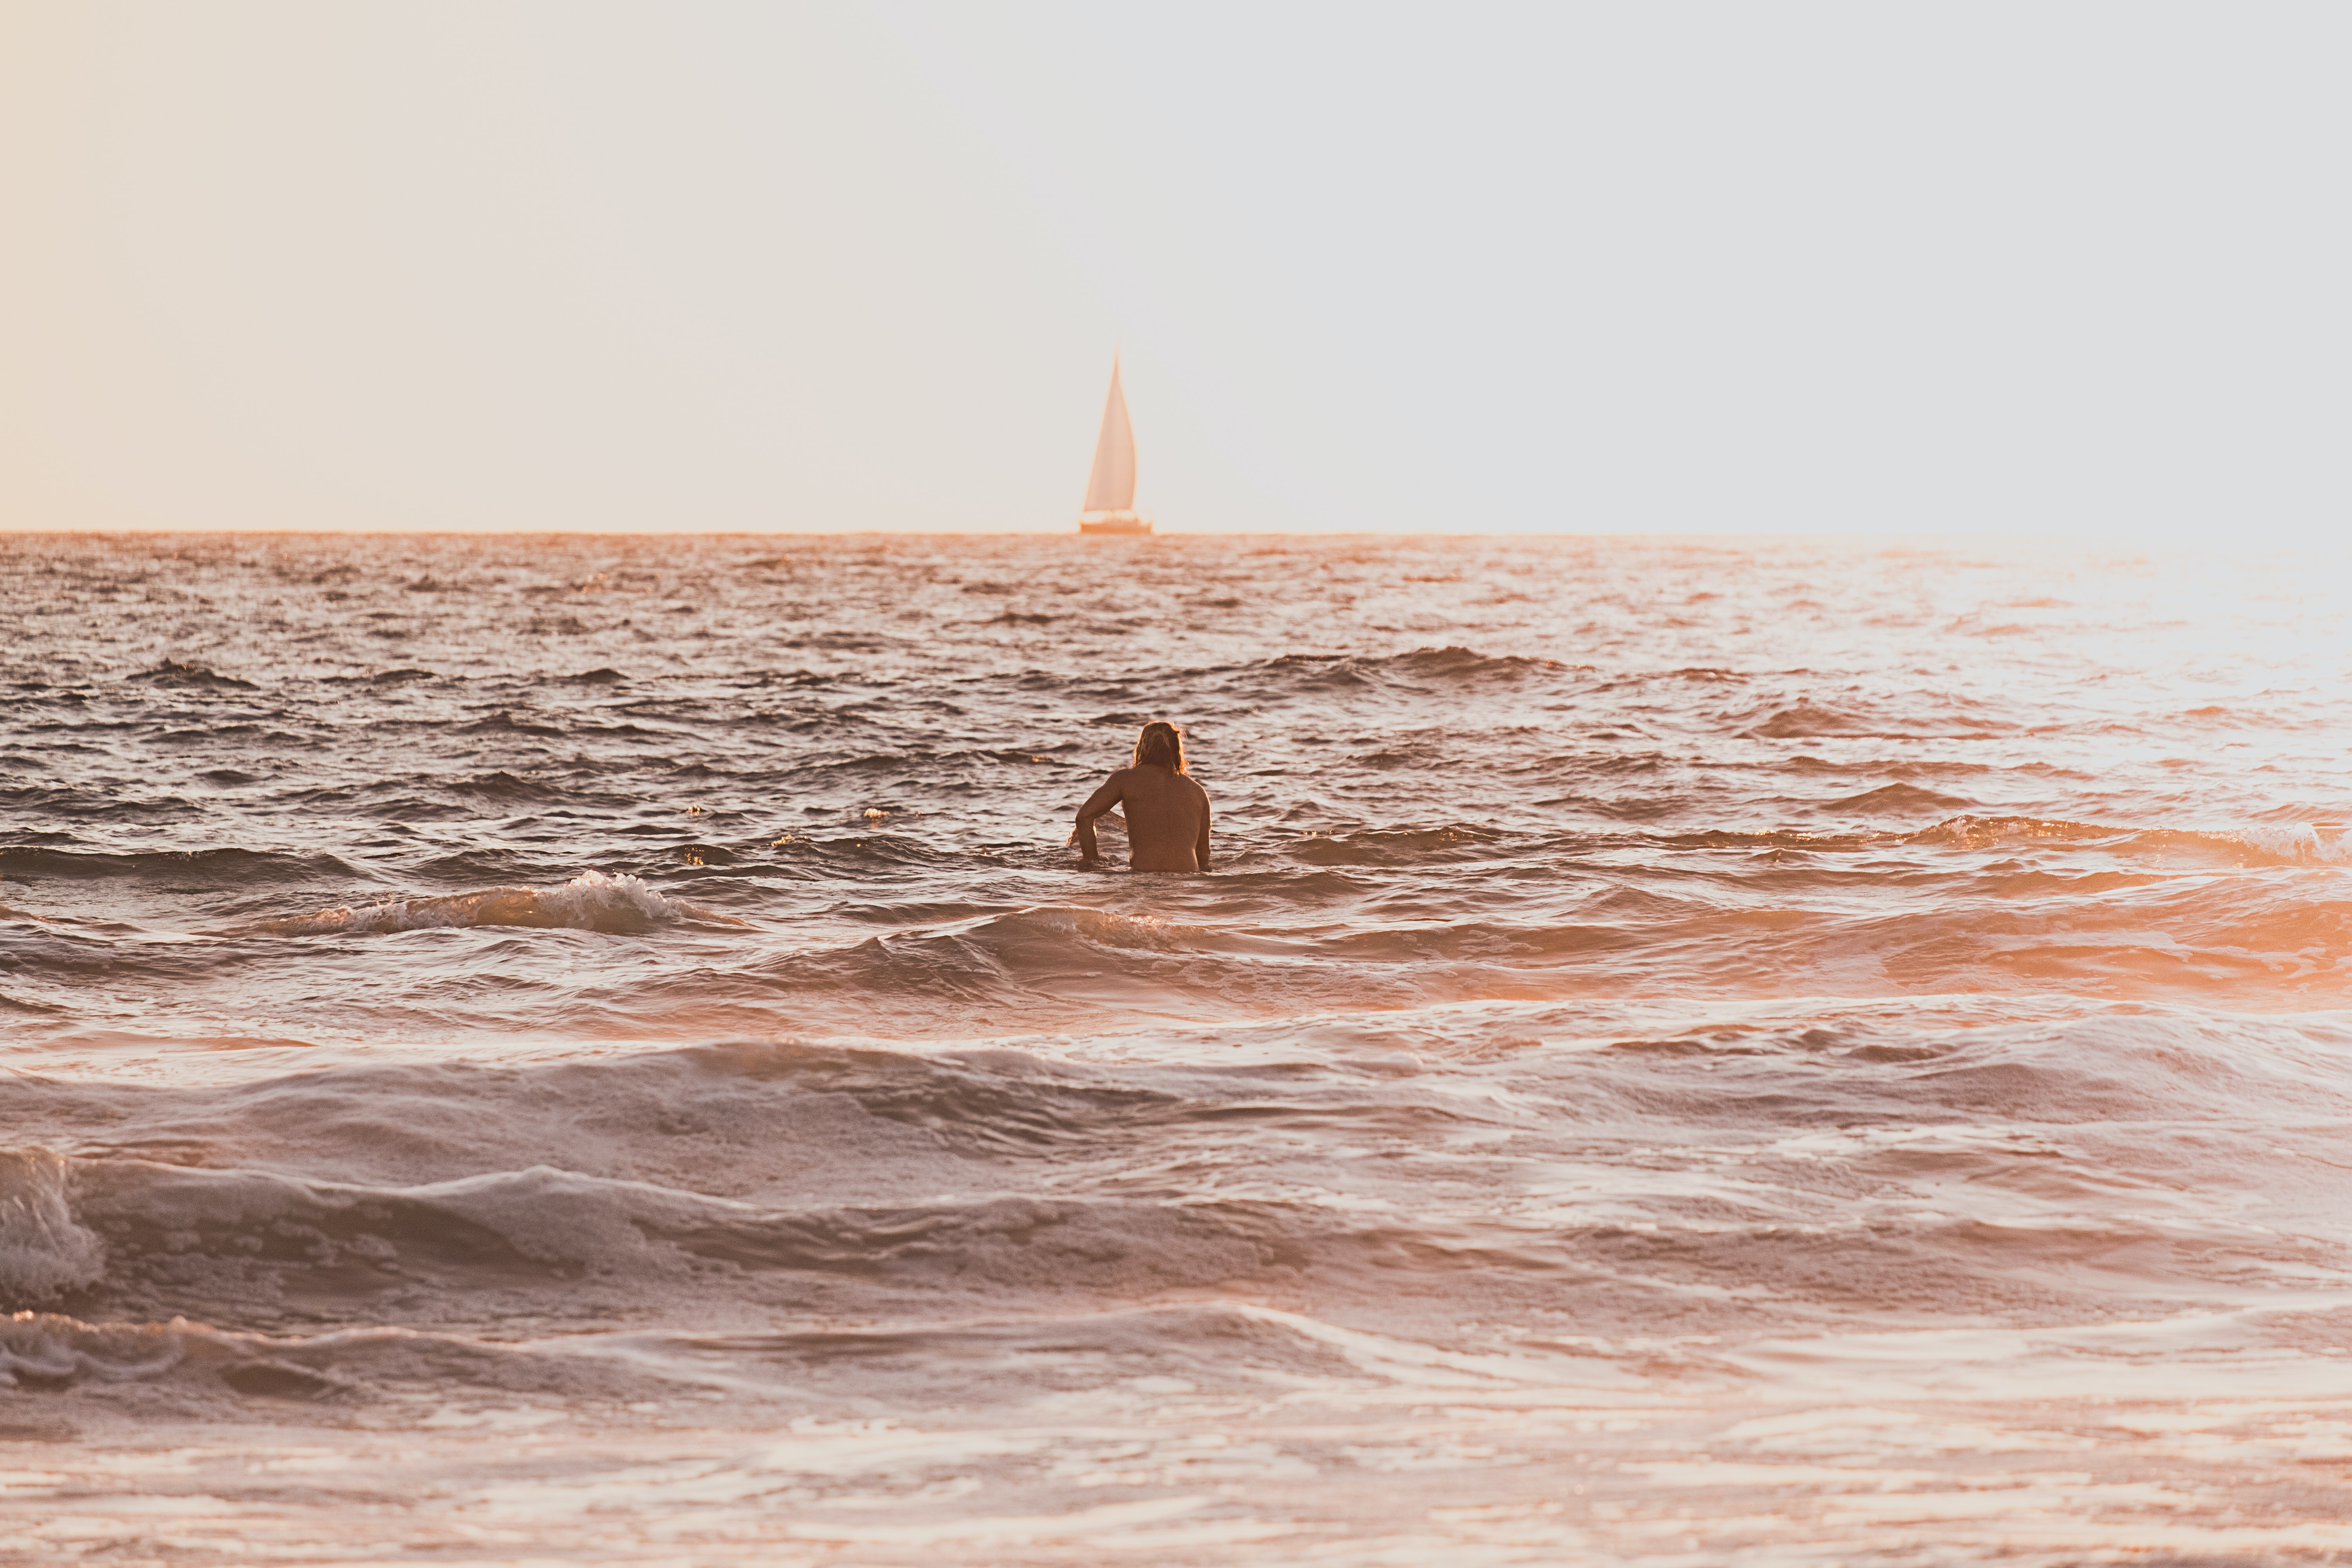 person riding surfboard during golden hour